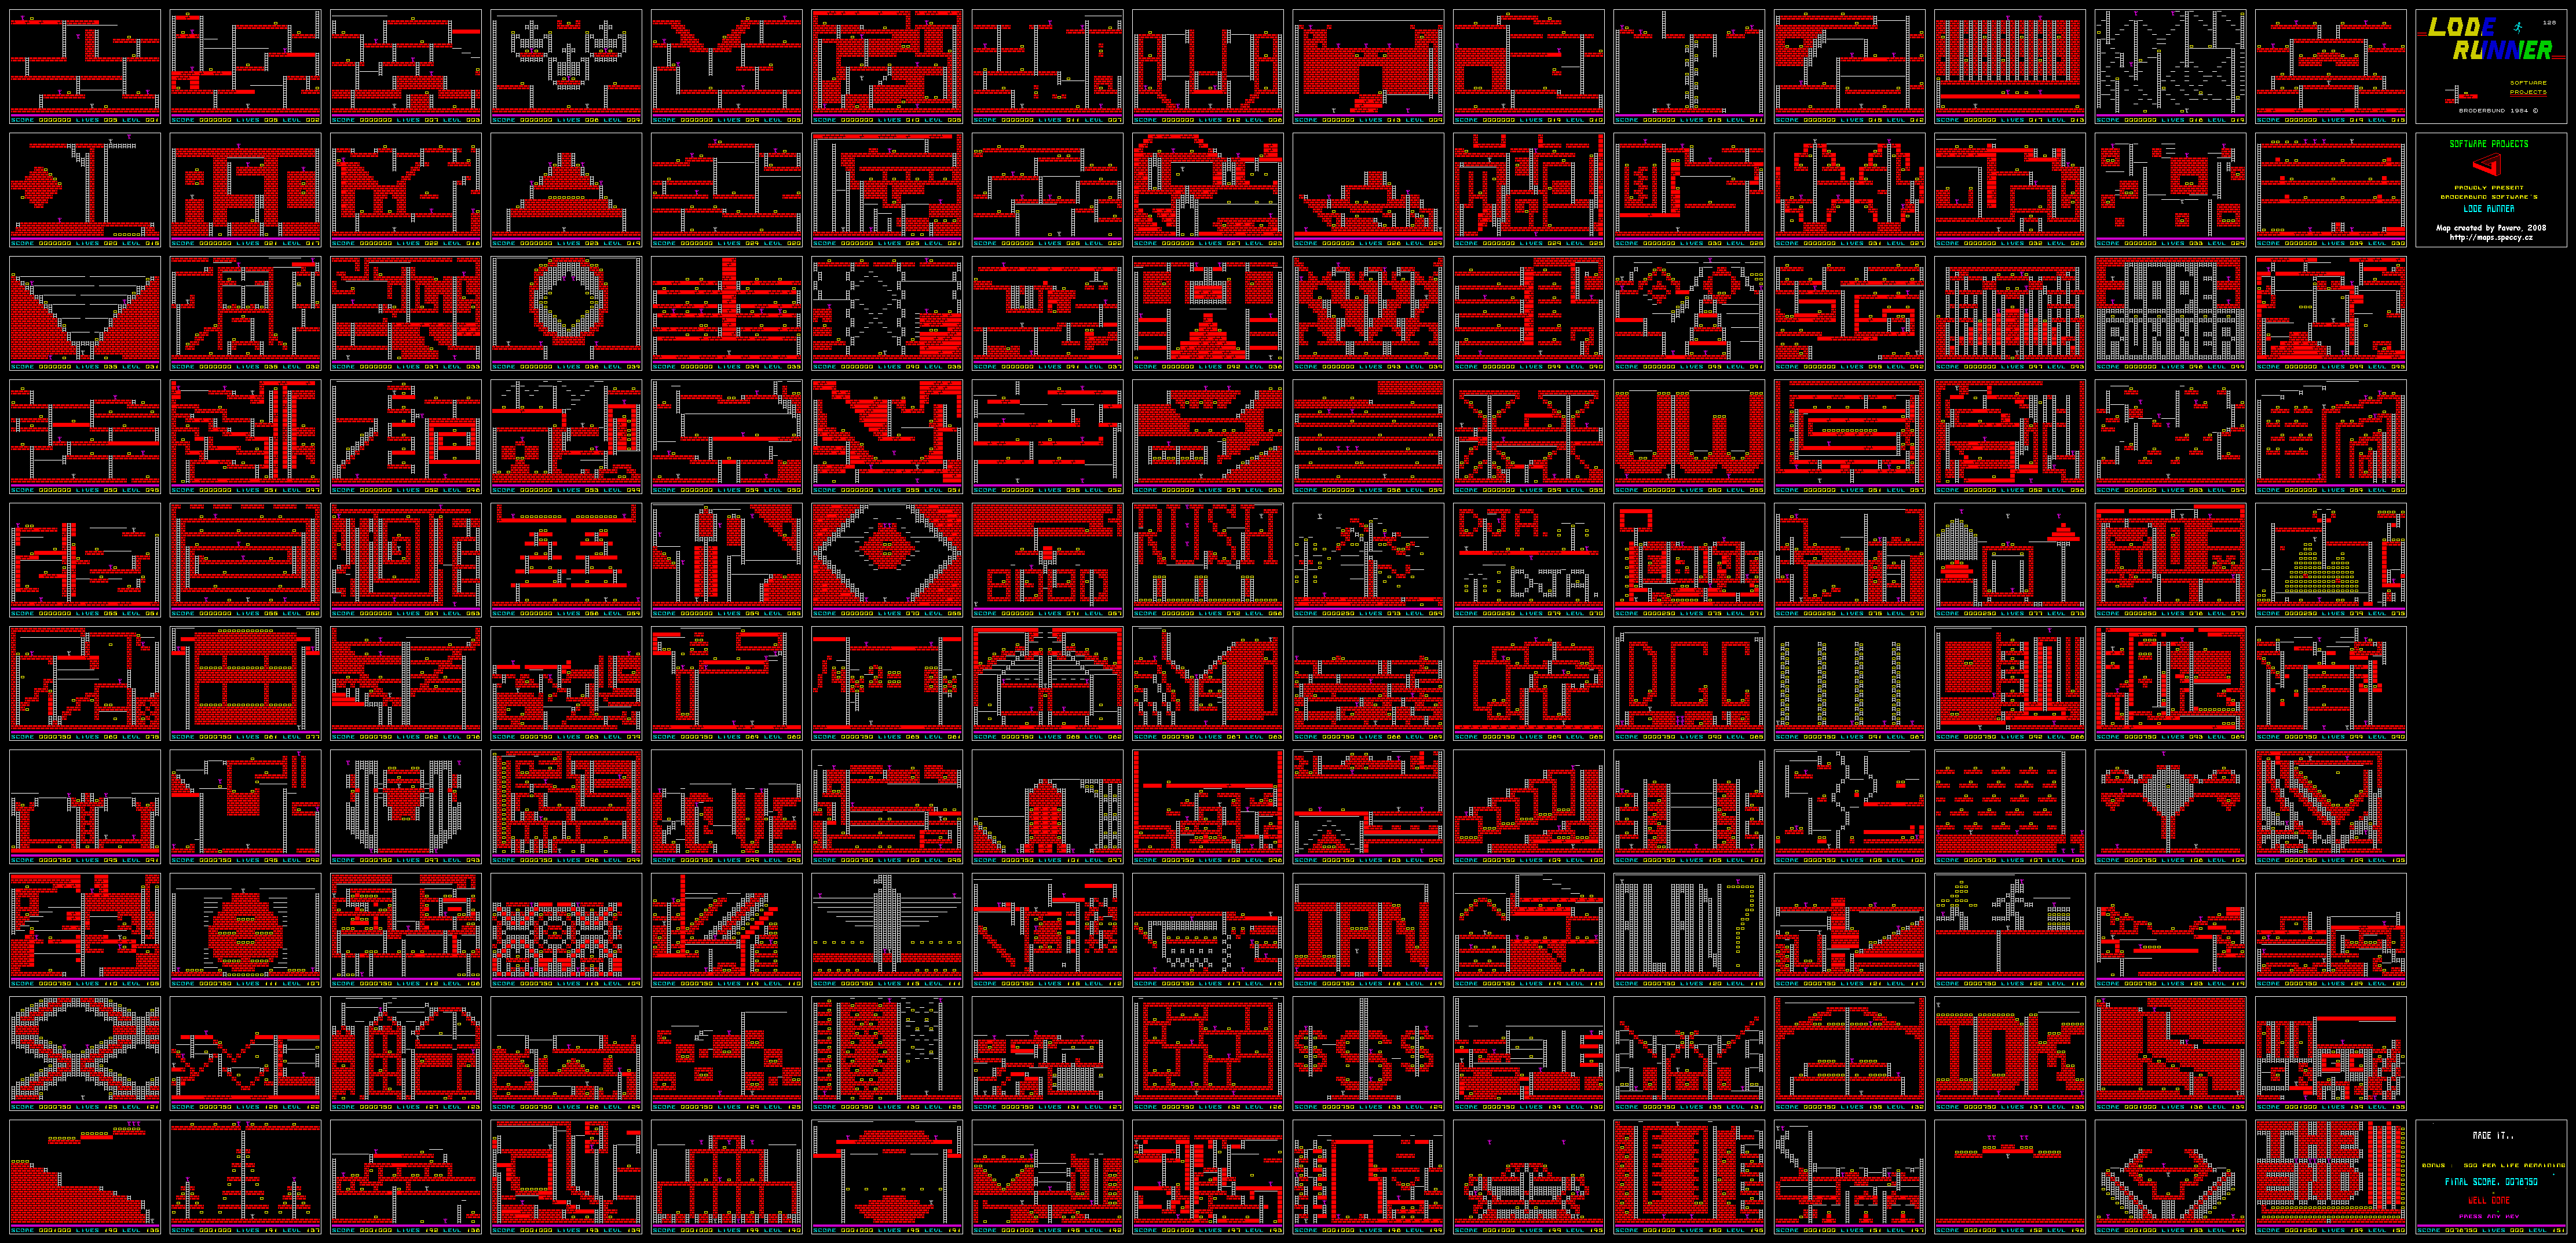 Lode Runner - The Map